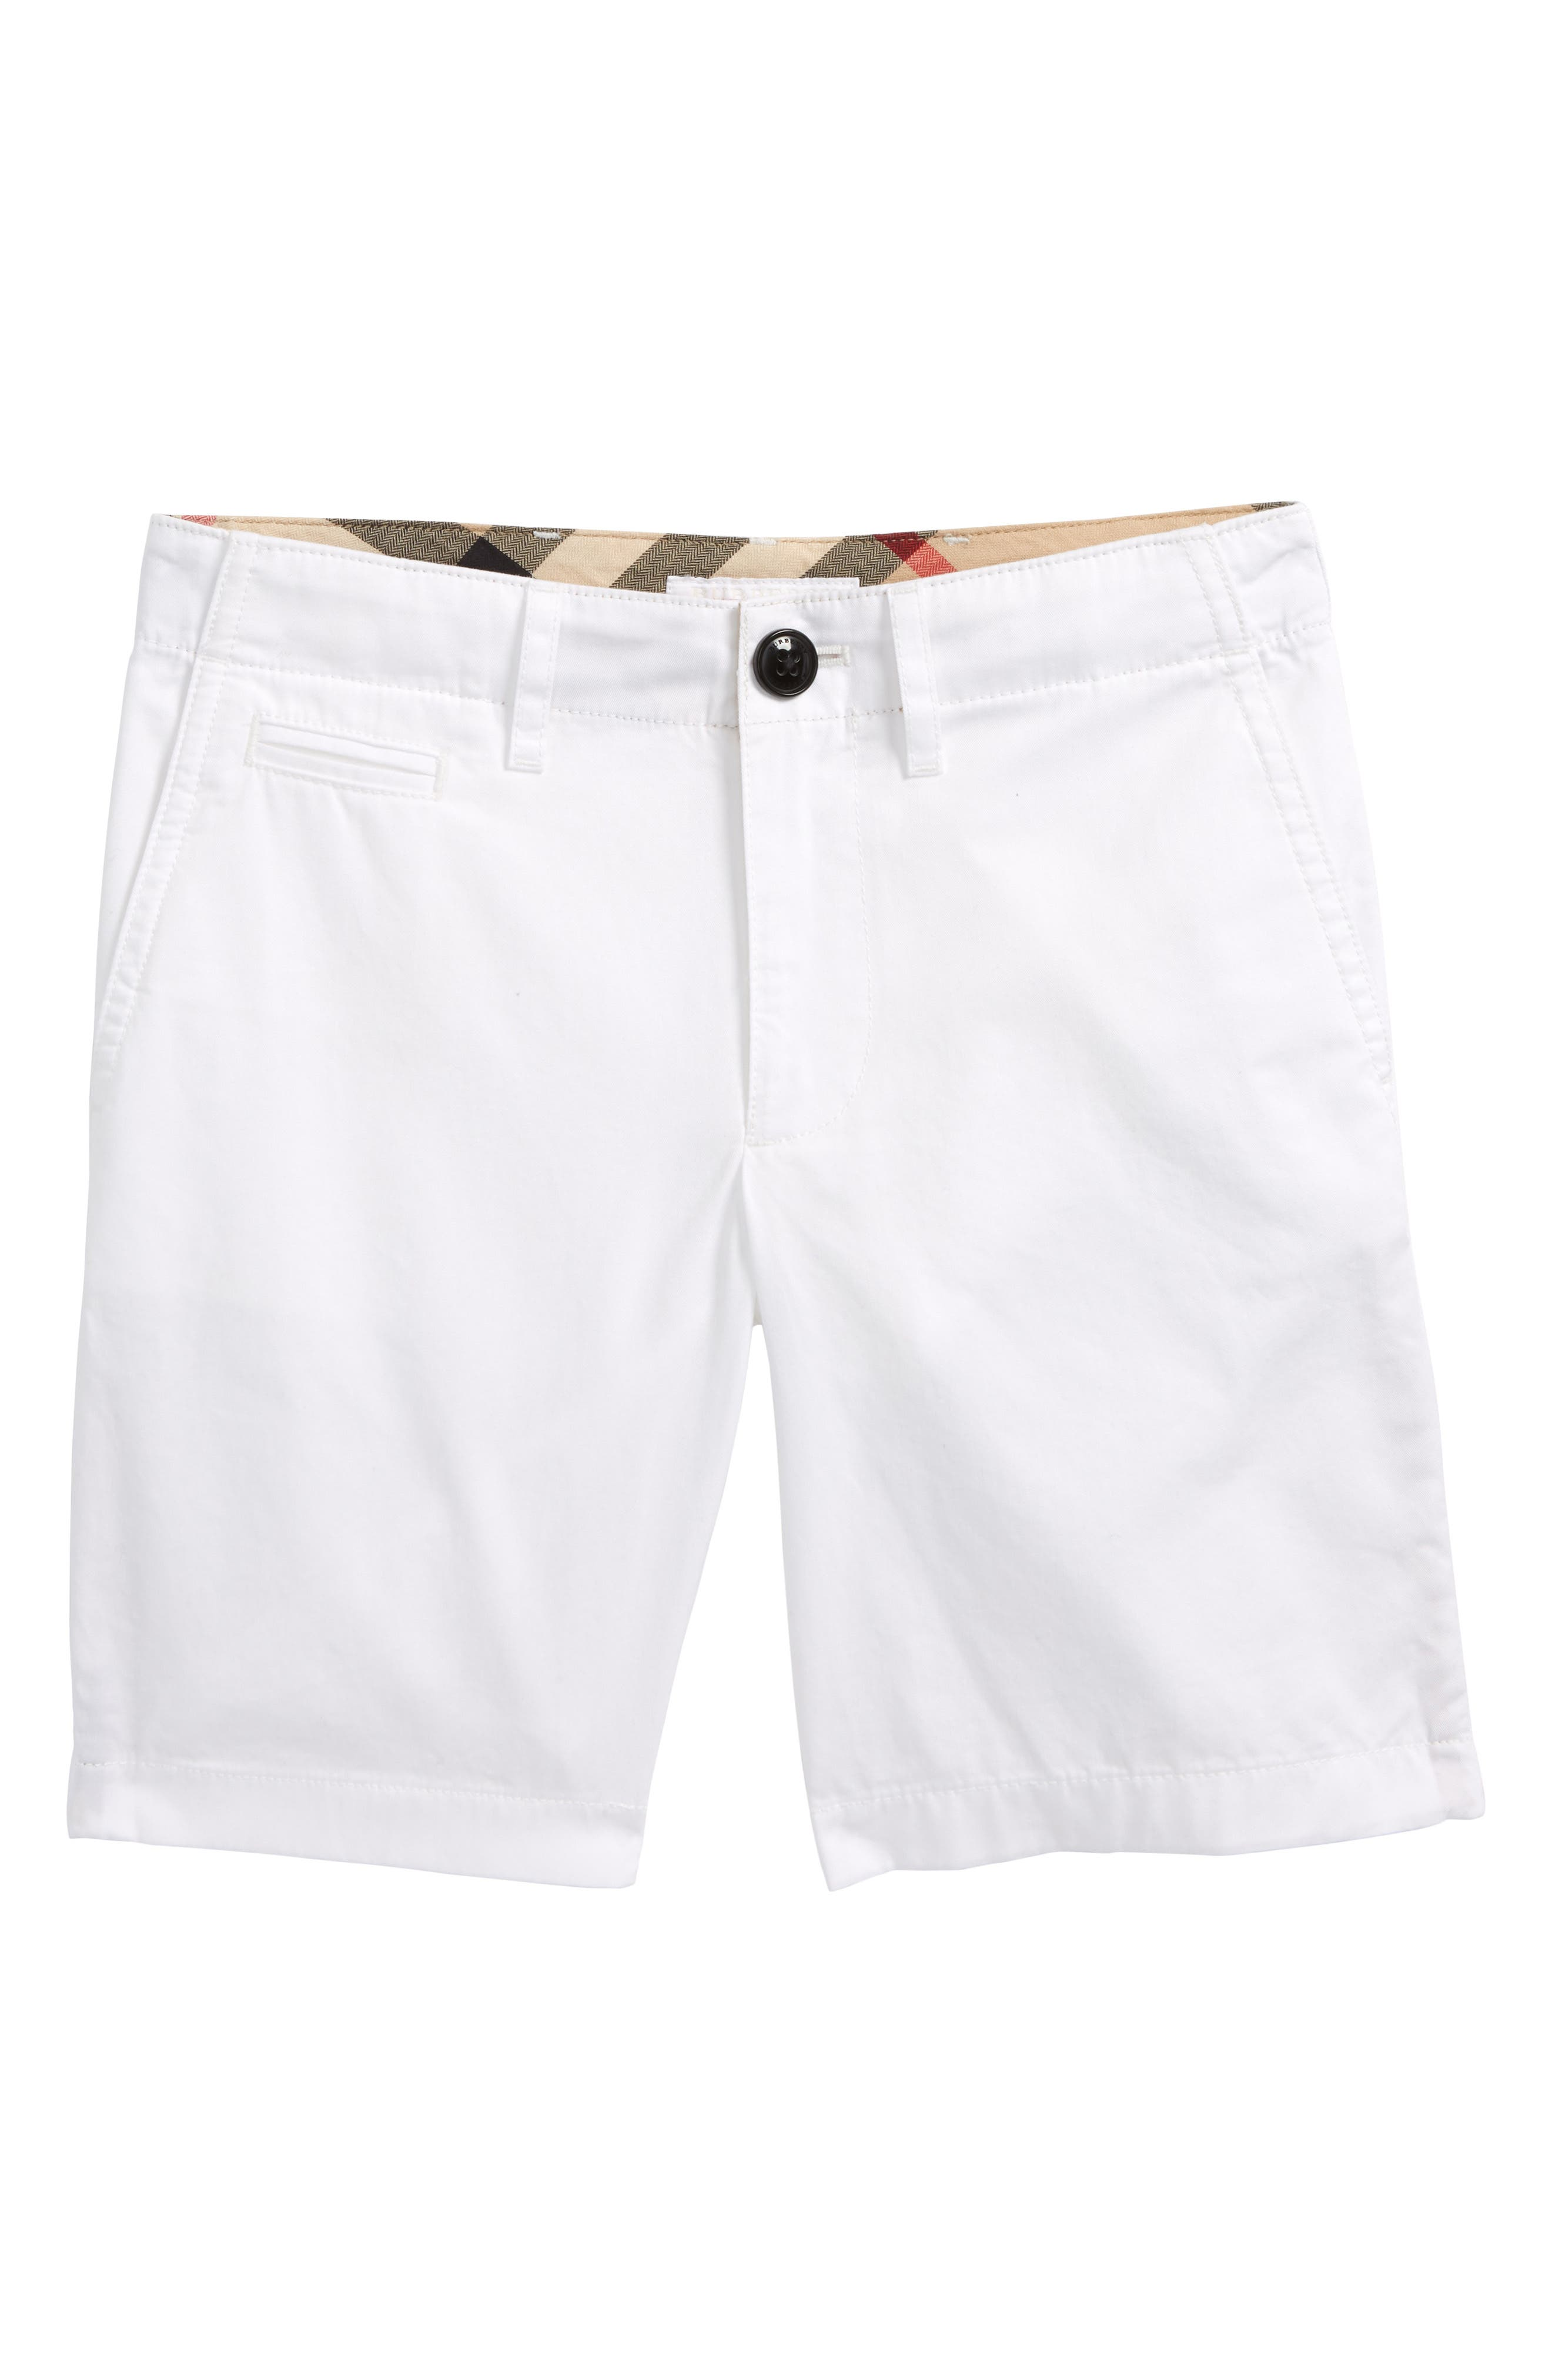 Tristen Cotton Twill Shorts,                             Main thumbnail 1, color,                             White